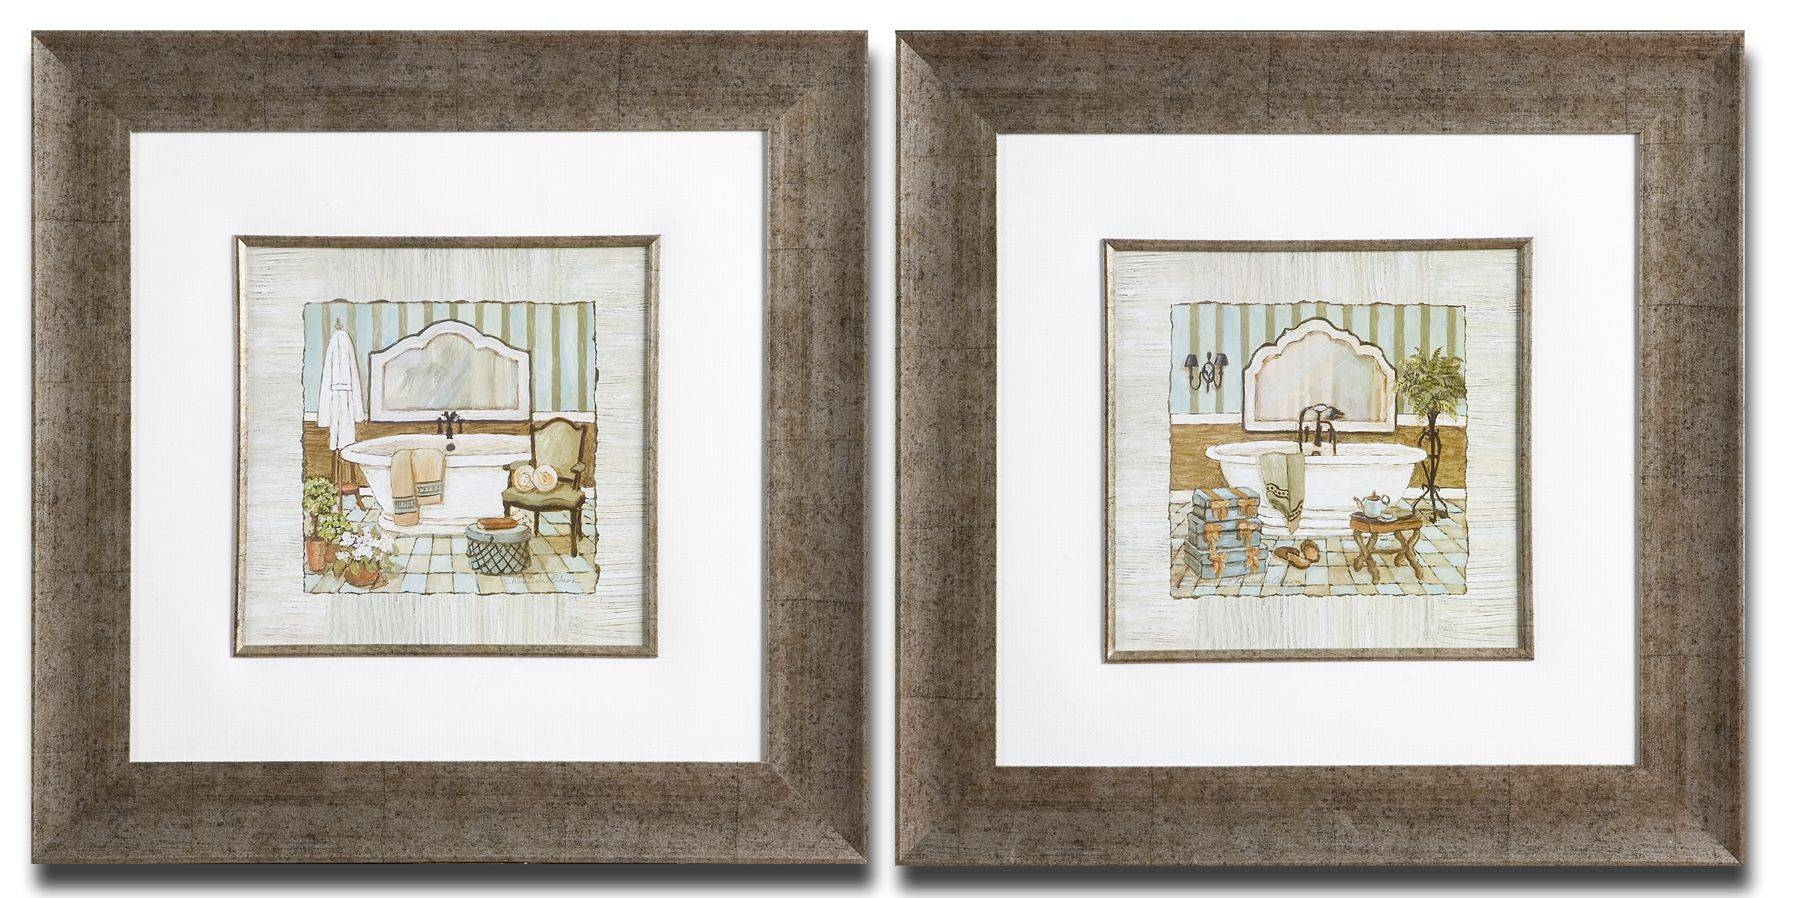 Framed Art For Bathroom, French Bathroom Prints Vintage Bathroom Pertaining To Recent Wall Art Print Sets (View 13 of 20)